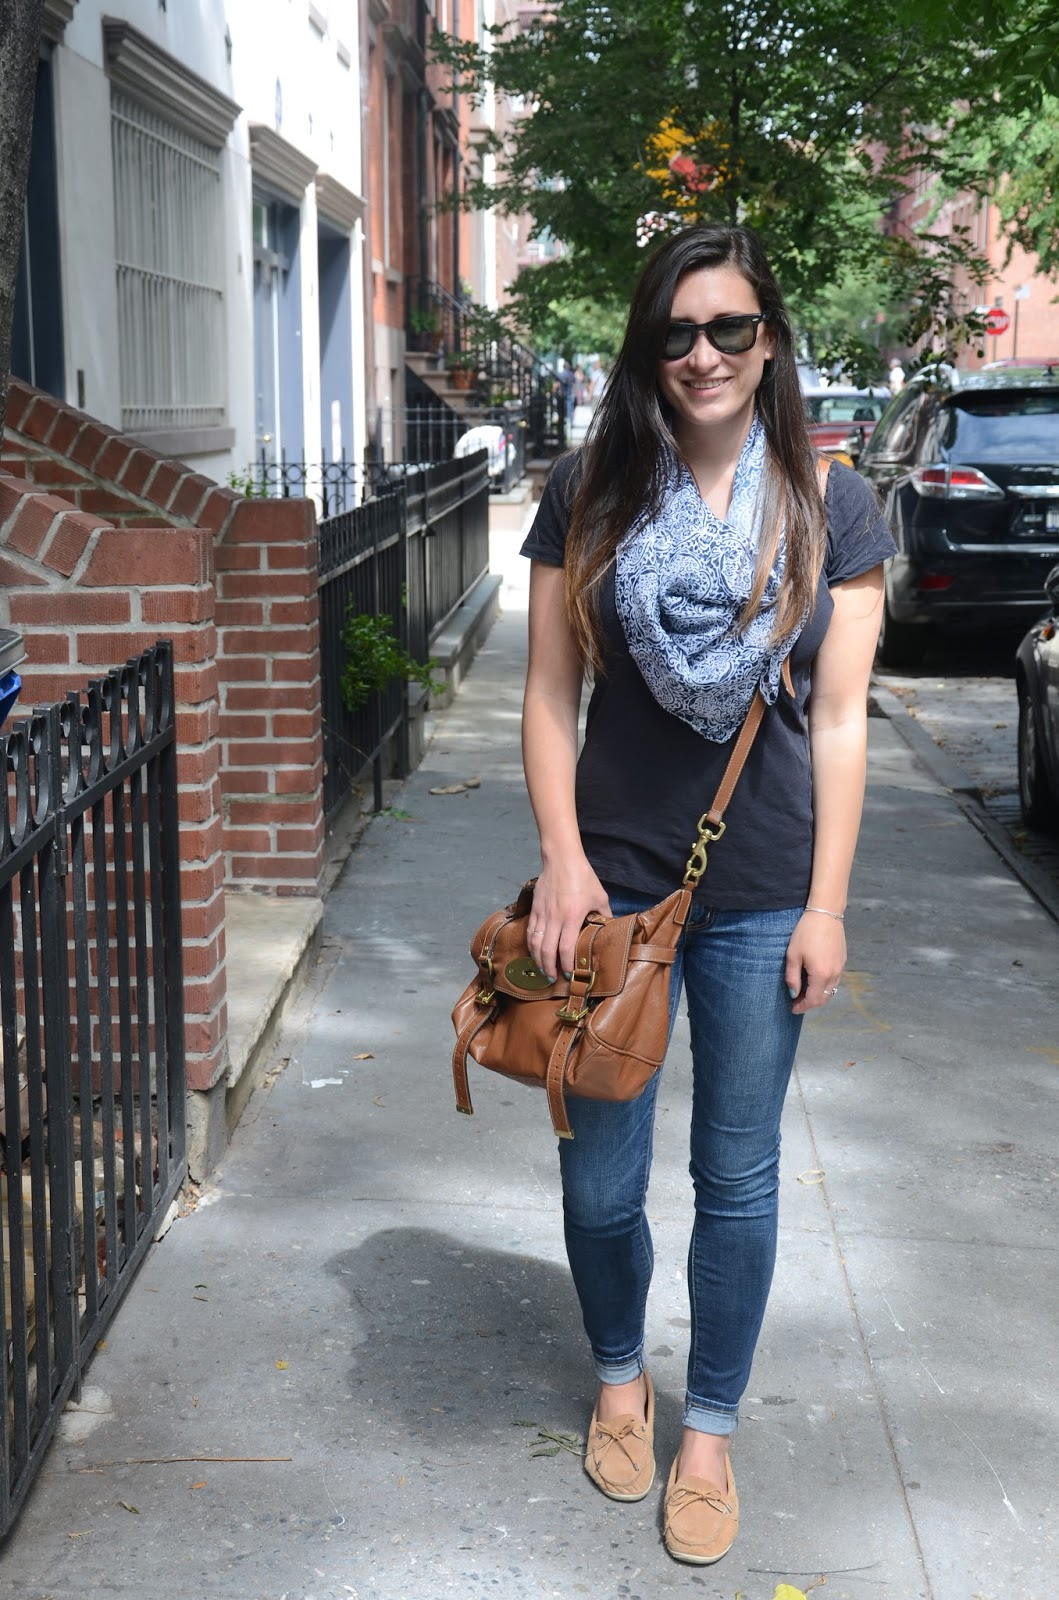 saturday stroll | black tee, printed scarf, + jeans